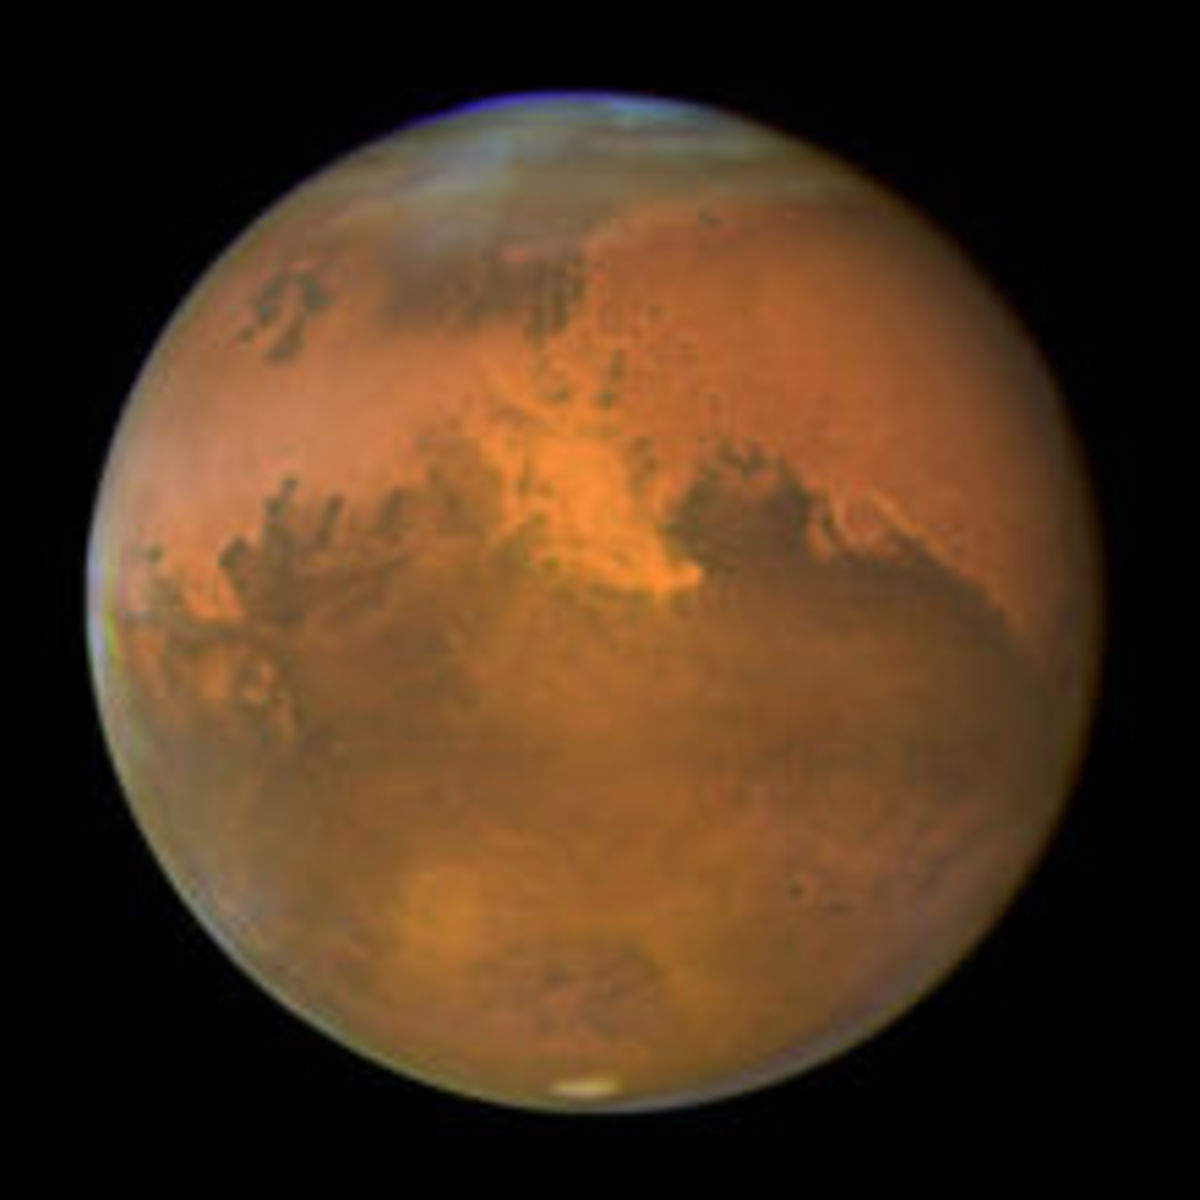 A Picture of the Hot Planet 'Mars'